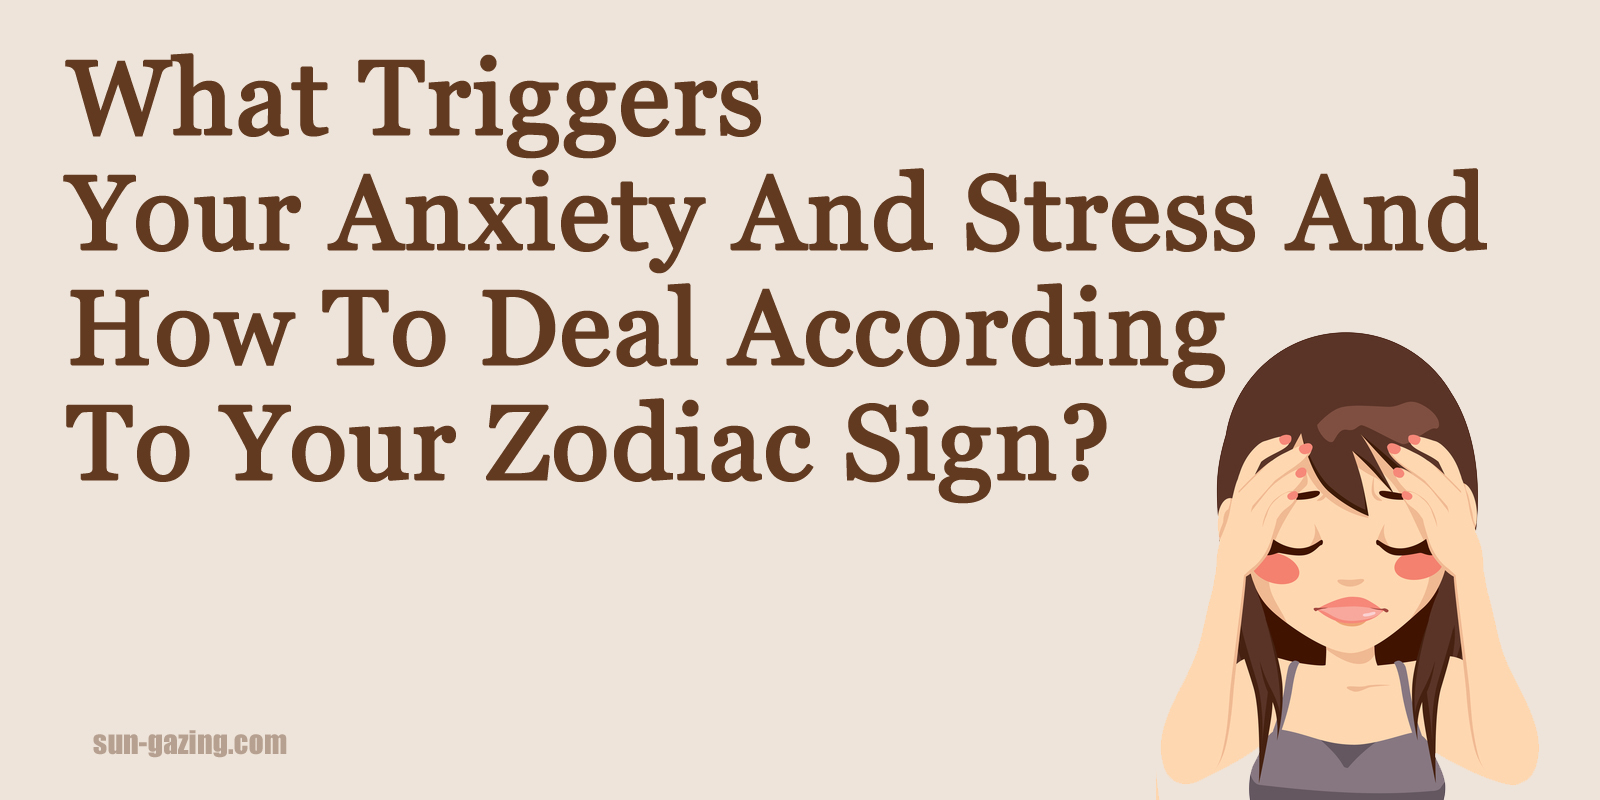 What Triggers Your Anxiety And Stress According To Your